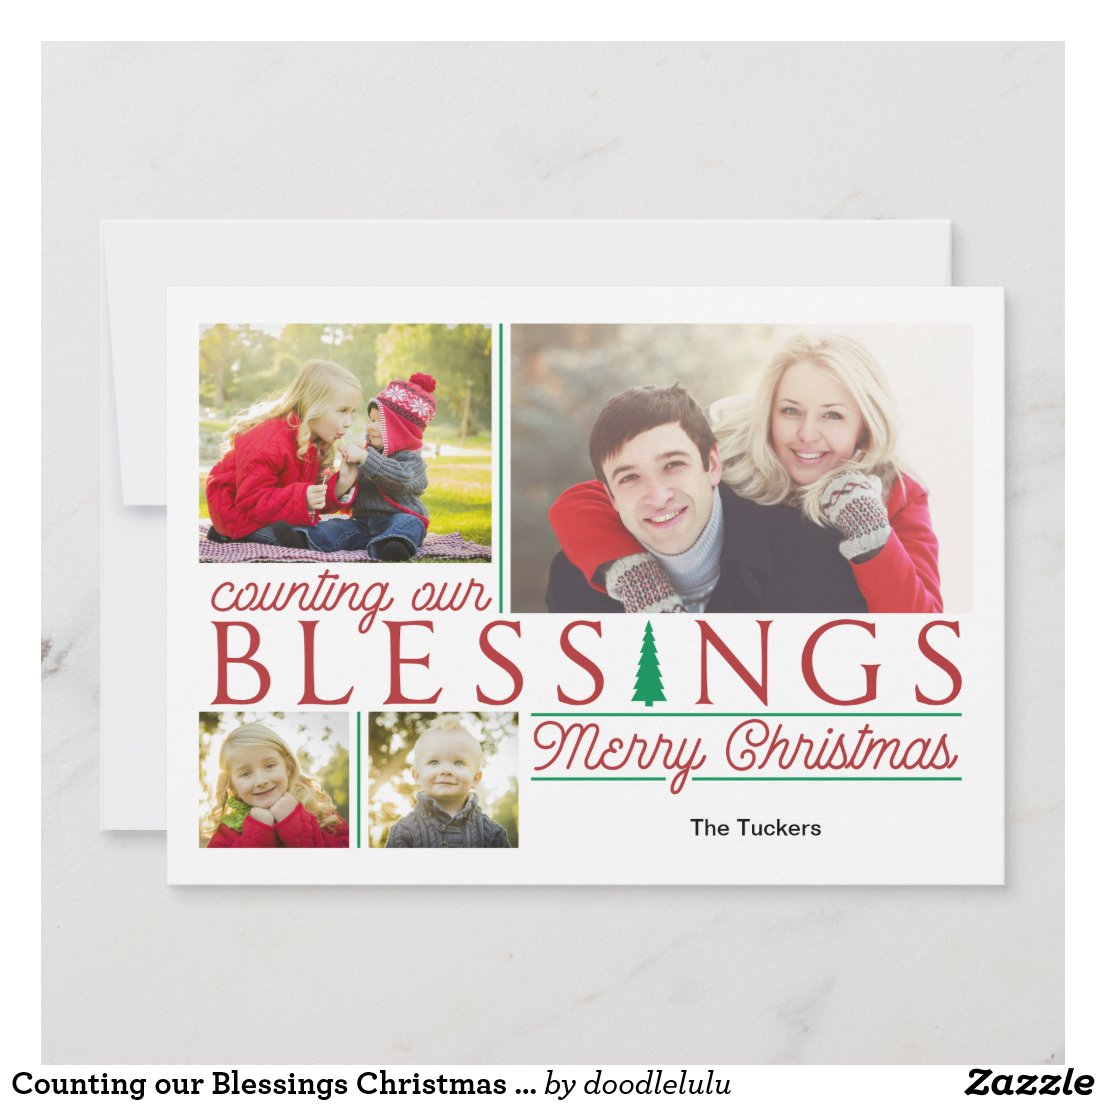 Counting our Blessings Christmas Photo Card